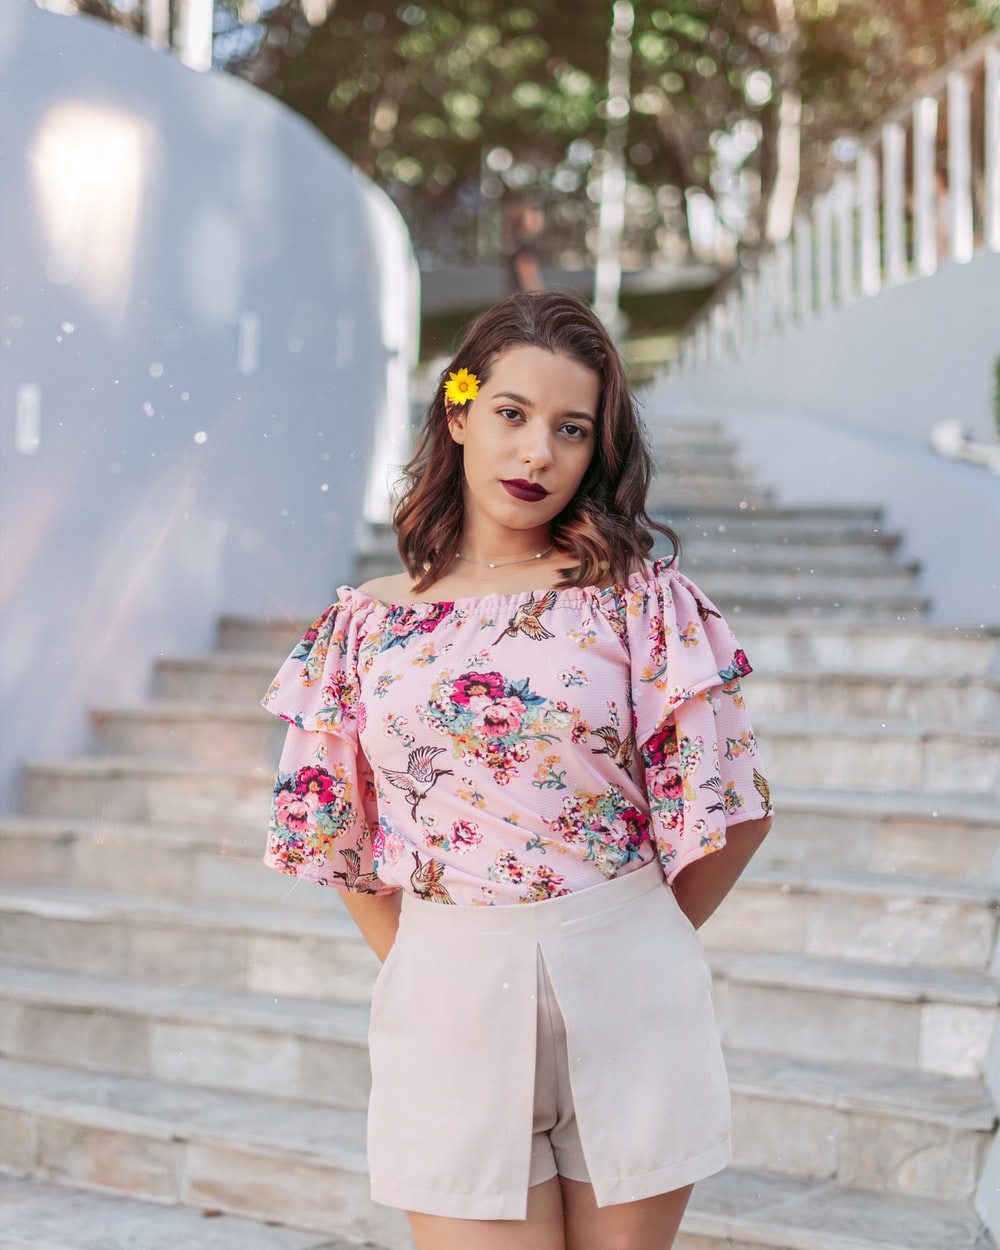 woman in pink and white floral shirt and white pants standing on concrete stairs